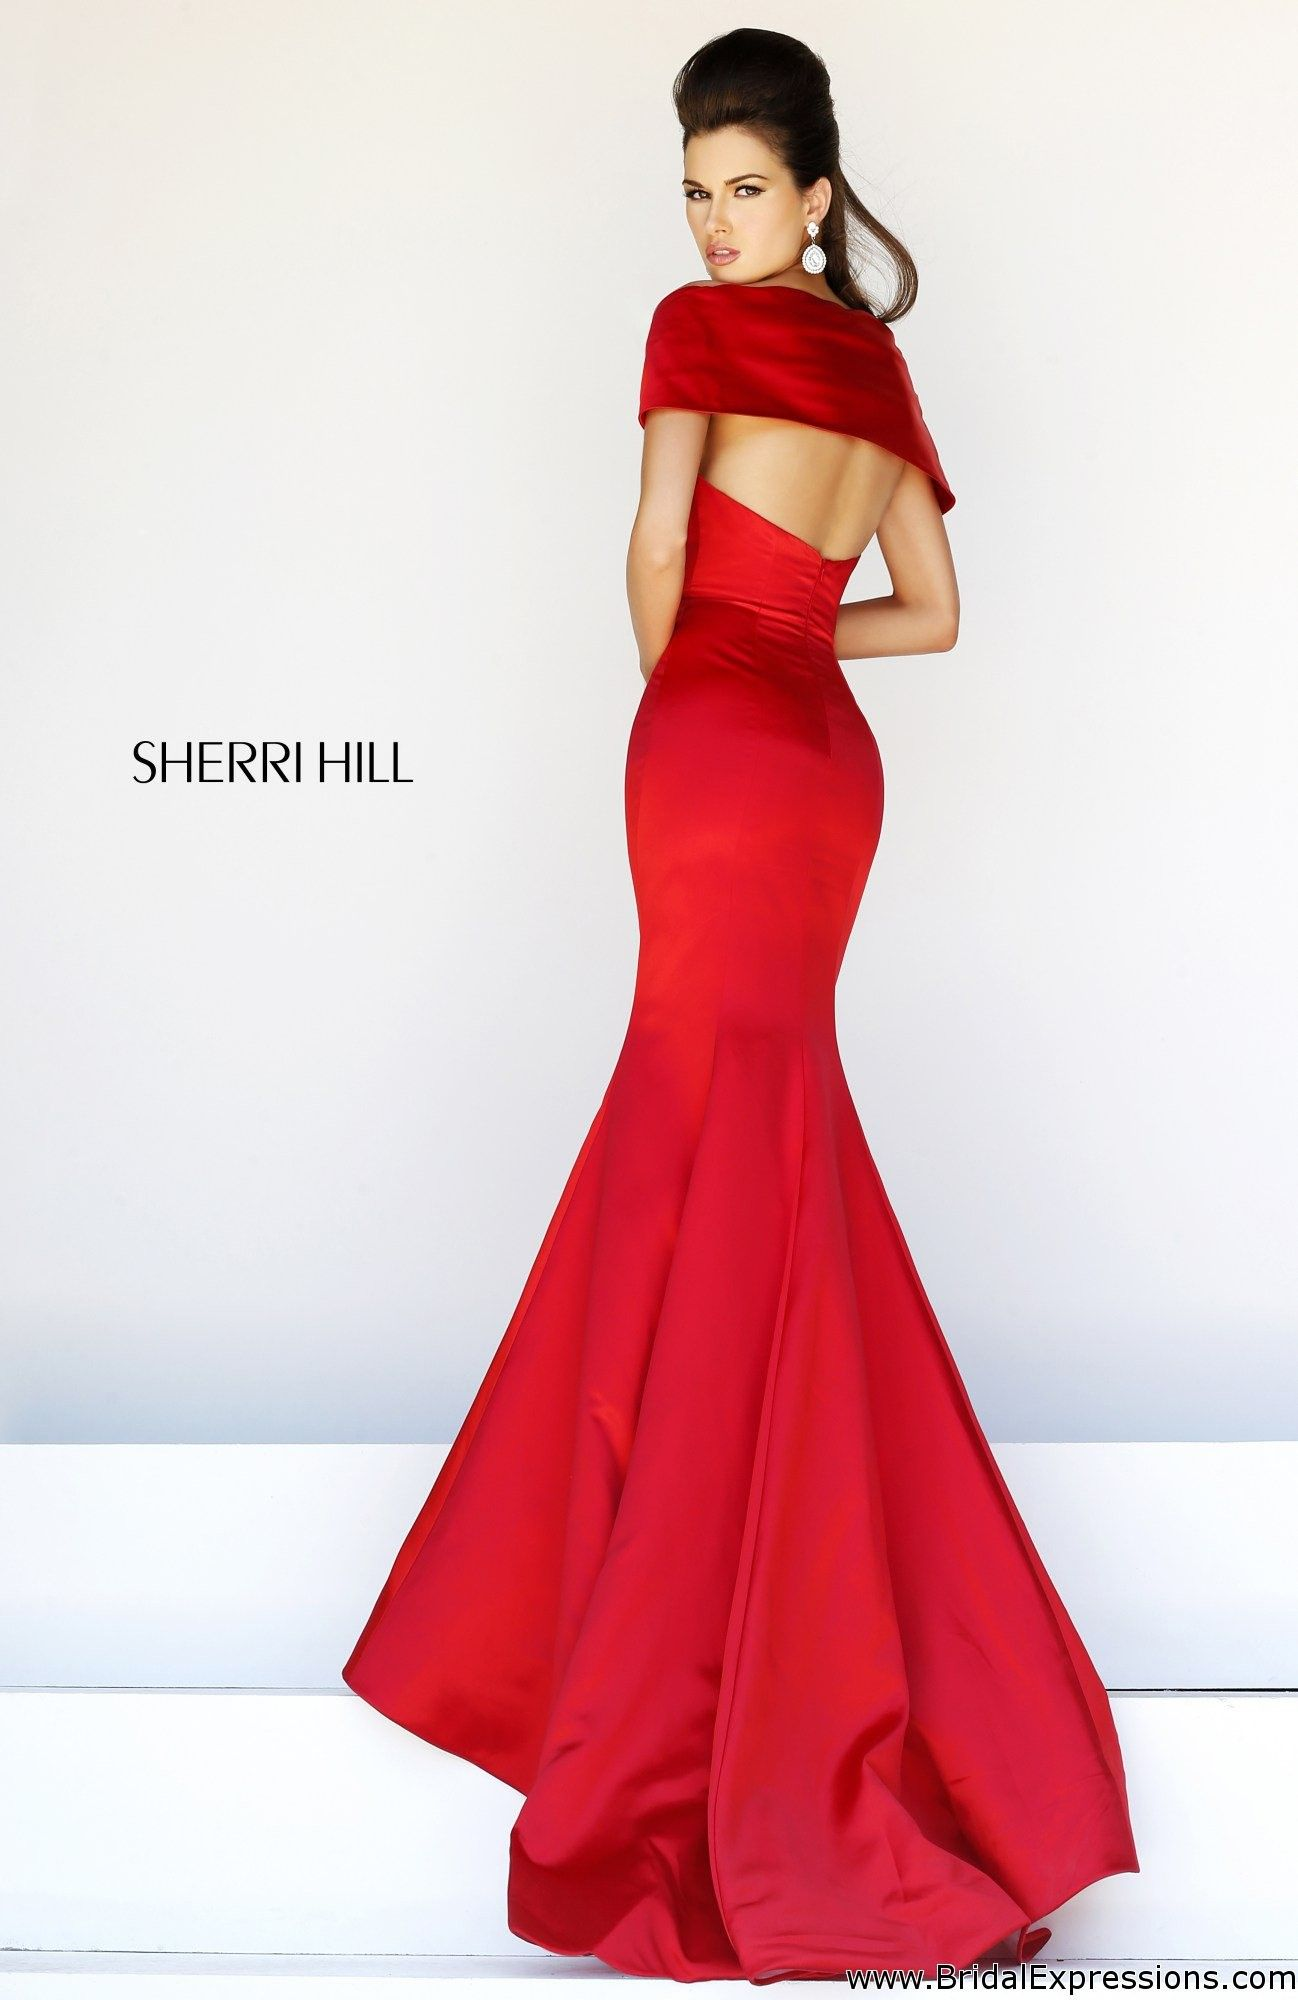 Sherri hill satin mermaid prom dress prom dresses